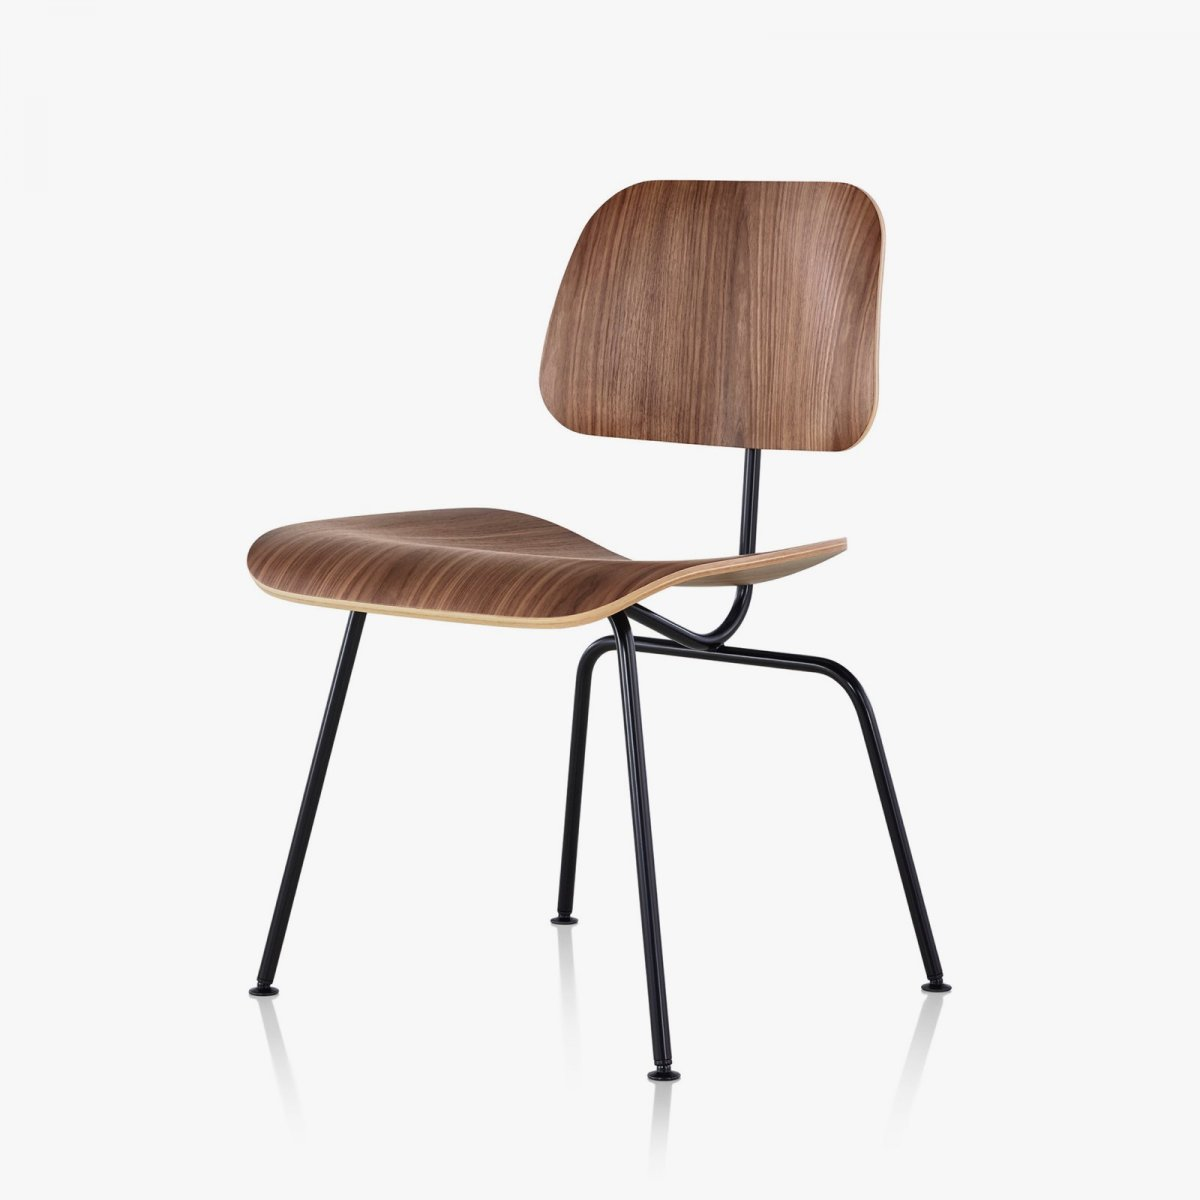 Eames Molded Plywood Dining Chair with Metal Base, walnut seat and back, black base.